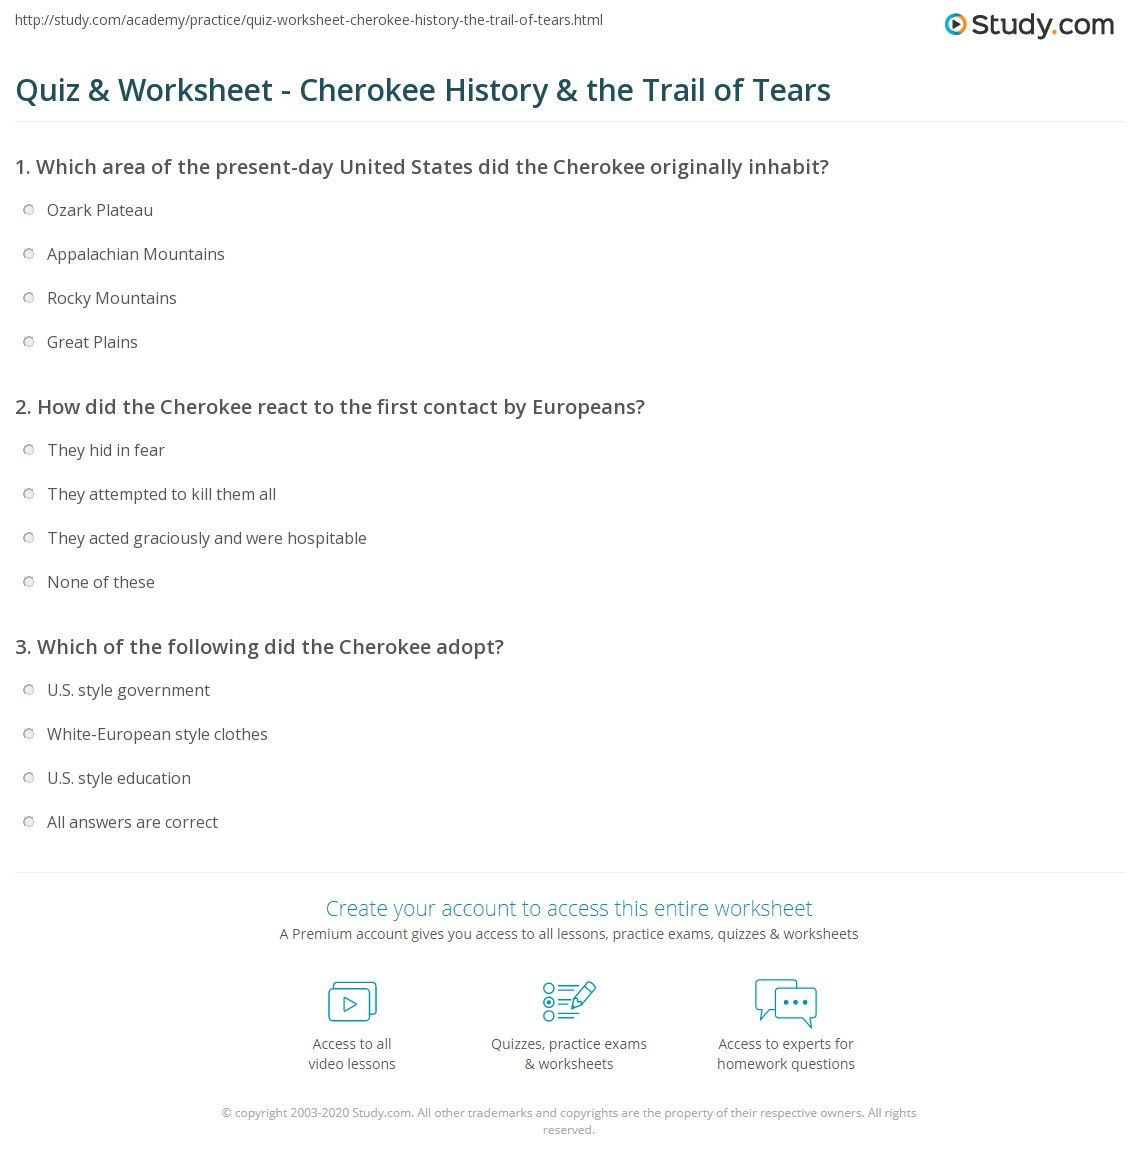 Weirdmailus  Winning Quiz Amp Worksheet  Cherokee History Amp The Trail Of Tears  Studycom With Luxury Print The Cherokee Amp The Trail Of Tears History Timeline Amp Summary Worksheet With Captivating Free Letter F Worksheets Also Capacity Worksheets Ks In Addition Muscular System Worksheets For Kids And  Square Worksheets As Well As Instructional Writing Worksheets Additionally The Periodic Table Worksheets From Studycom With Weirdmailus  Luxury Quiz Amp Worksheet  Cherokee History Amp The Trail Of Tears  Studycom With Captivating Print The Cherokee Amp The Trail Of Tears History Timeline Amp Summary Worksheet And Winning Free Letter F Worksheets Also Capacity Worksheets Ks In Addition Muscular System Worksheets For Kids From Studycom